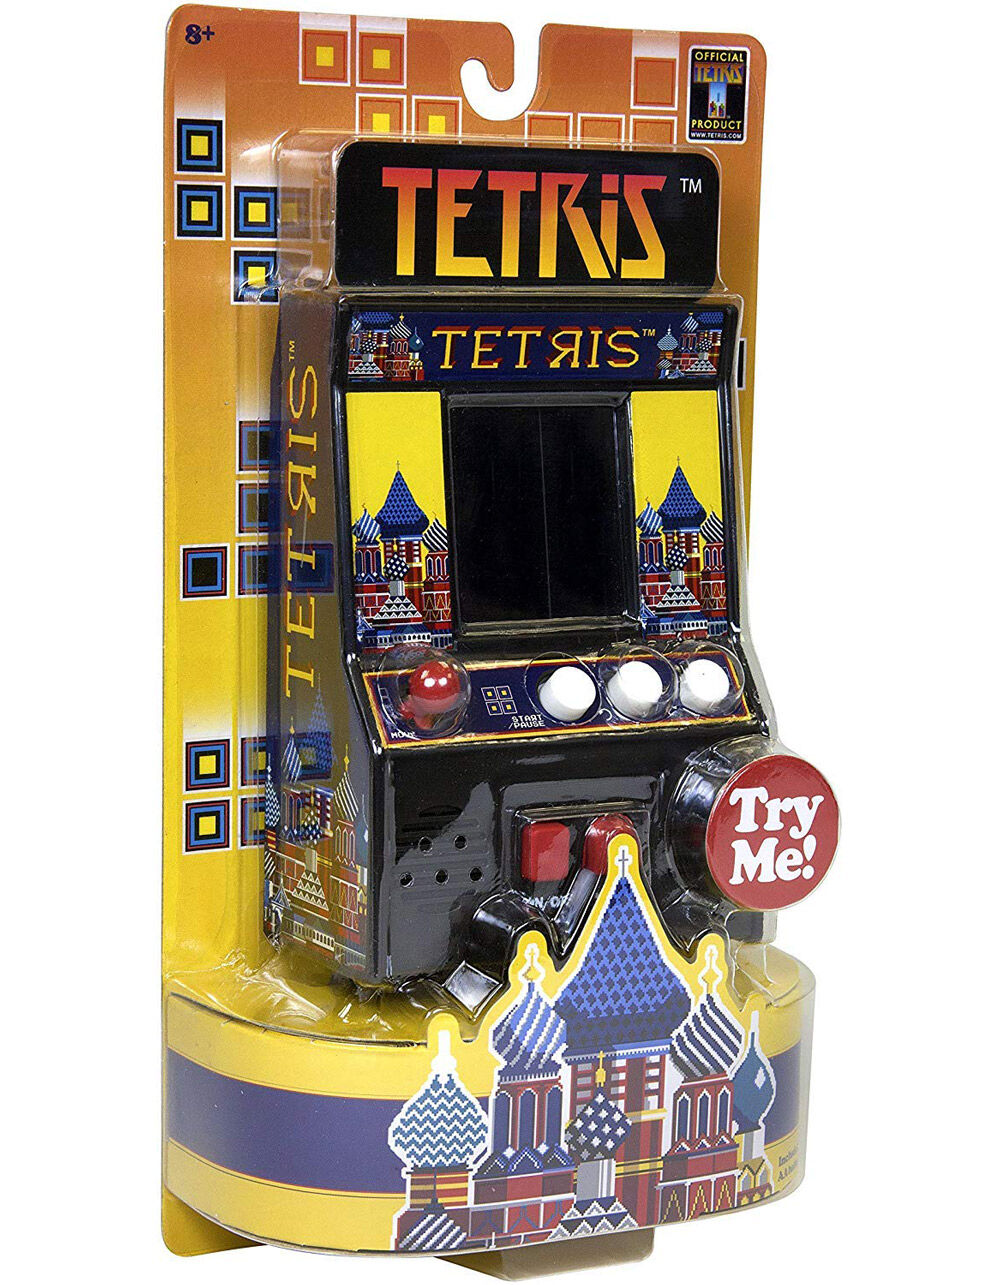 Tetris Retro Arcade Game